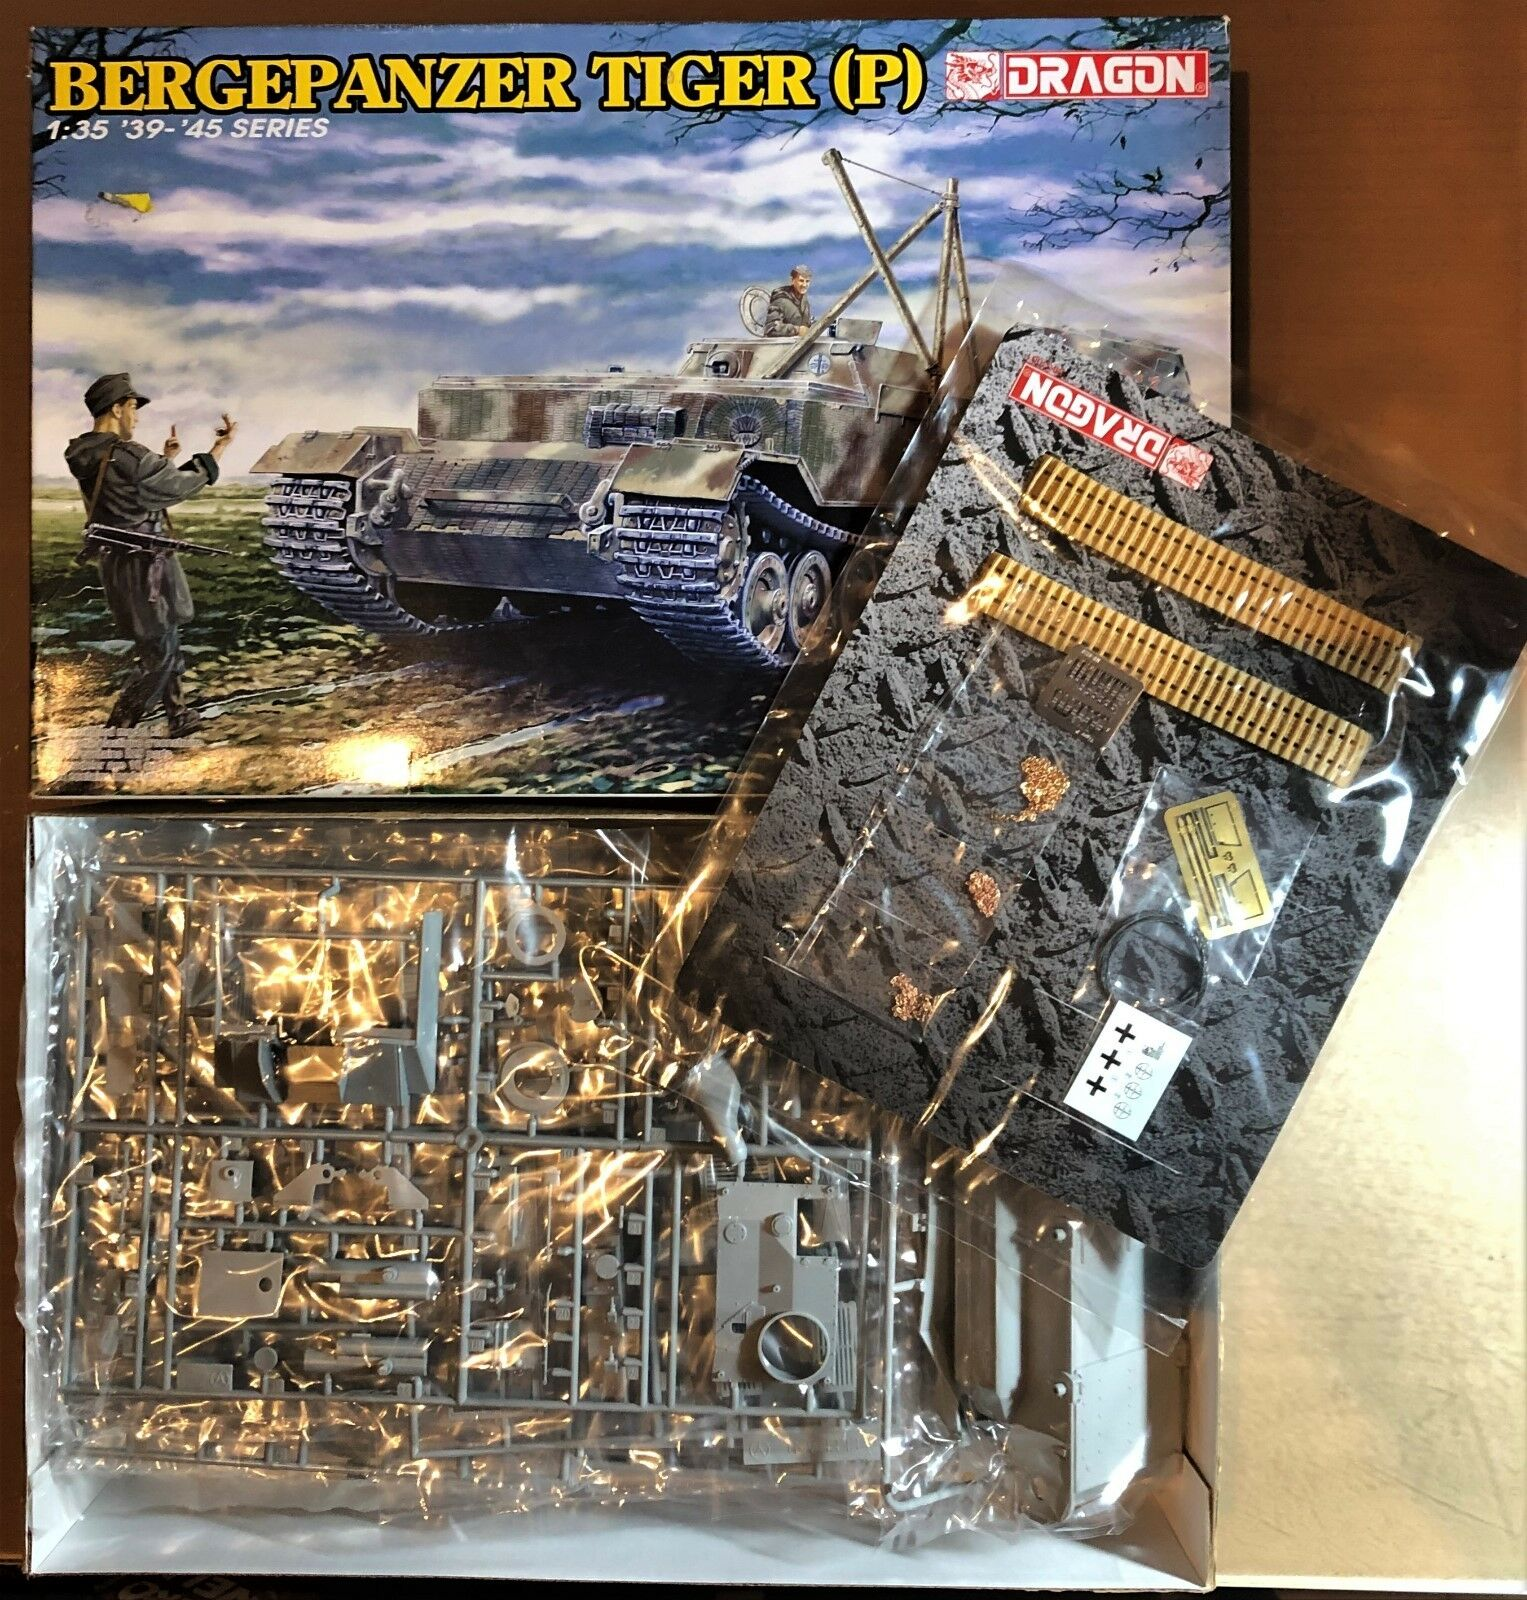 DRAGON 6226 - BERGEPANZER TIGER (P) - 1 35 PLASTIC KIT